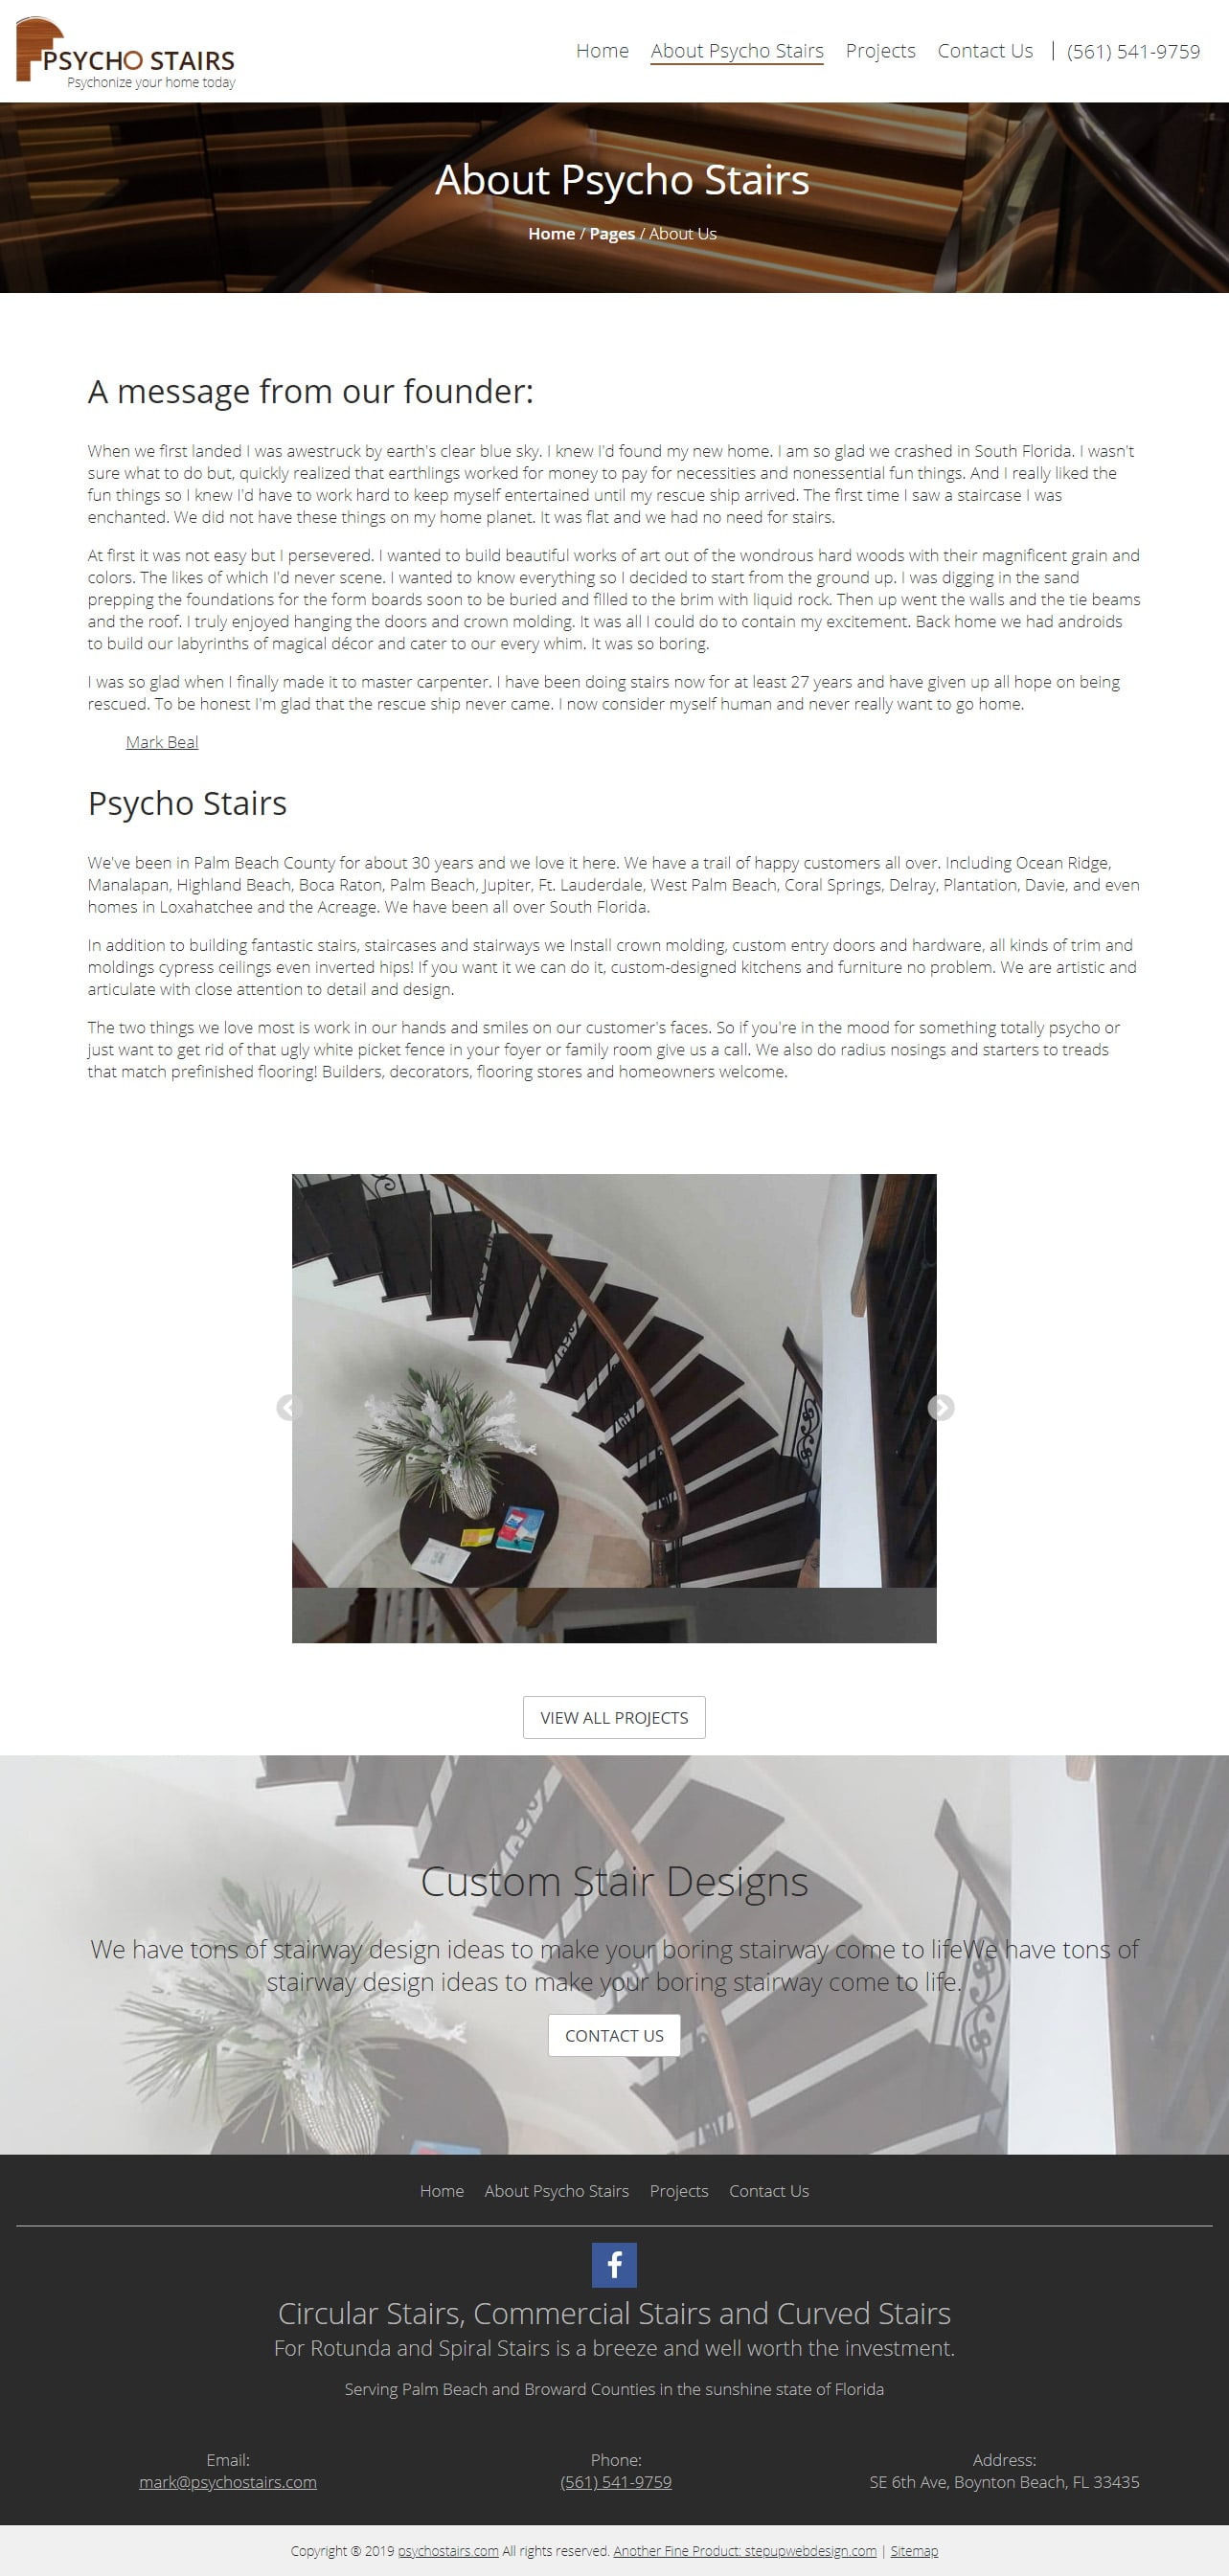 Psycho Stairs Website About US Page Design